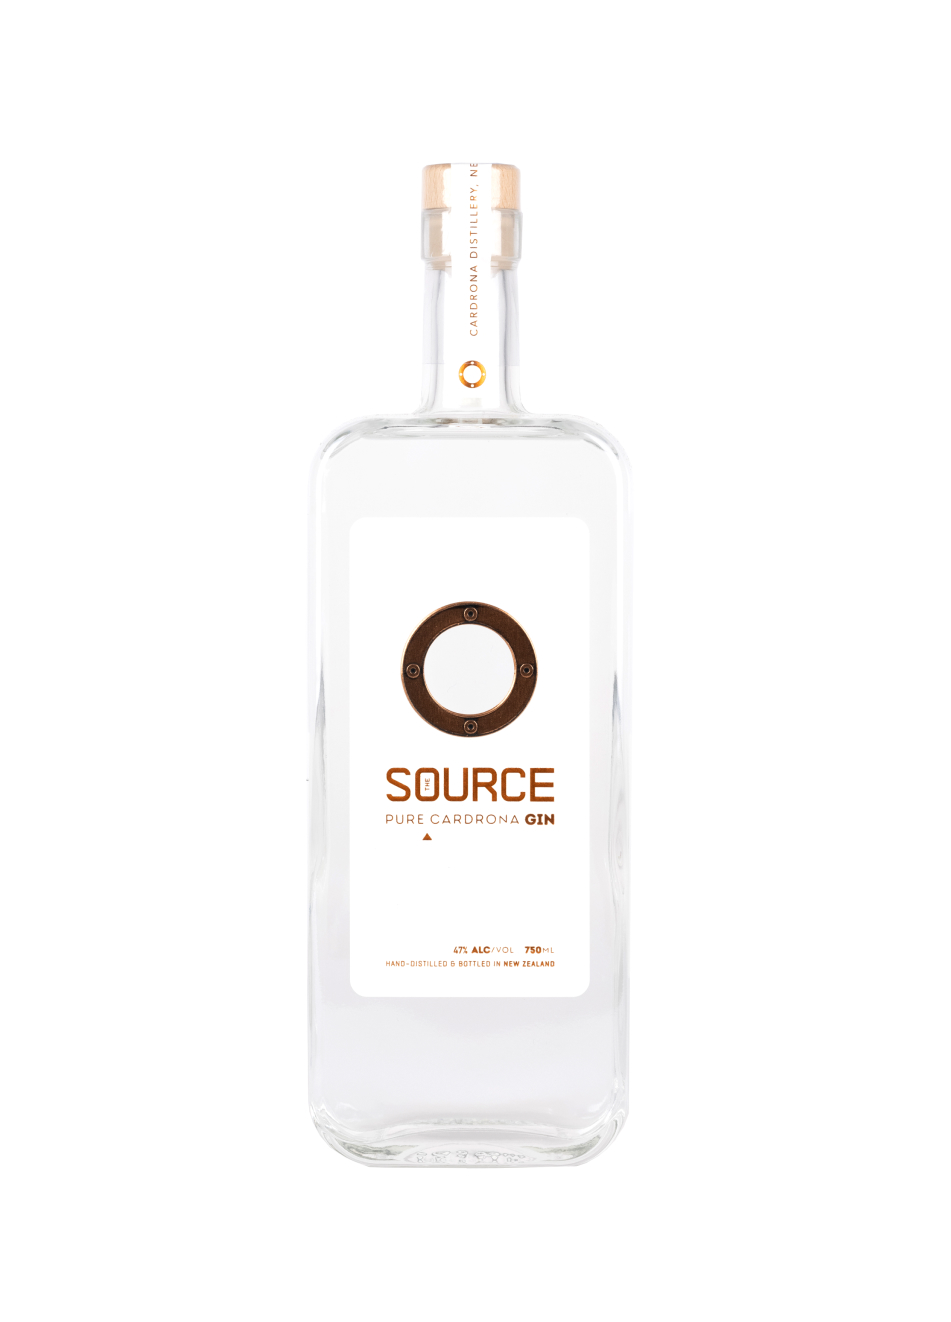 The Source Gin